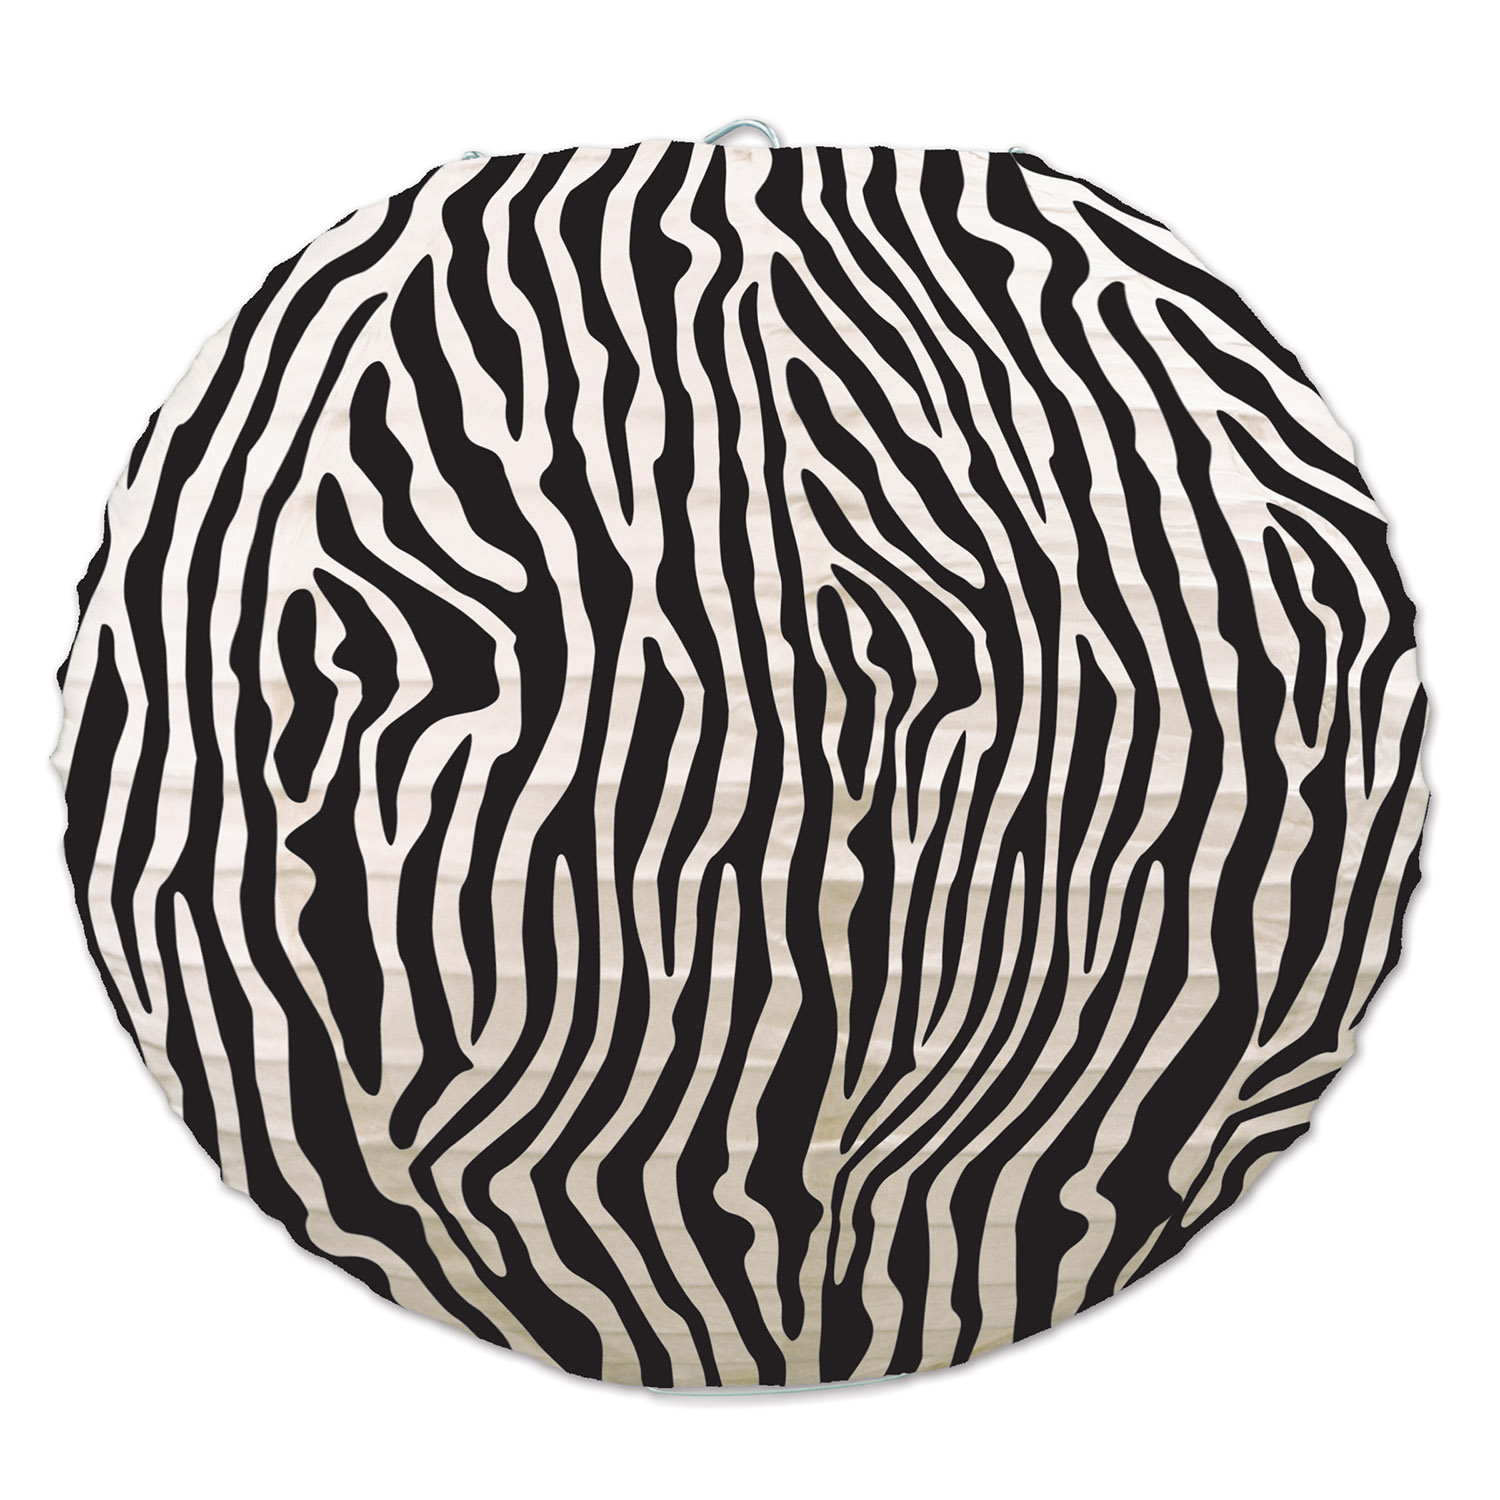 Zebra Print Paper Lanterns (Pack of 18) Zebra Print Paper Lanterns, decoration, safari, luau, new years eve, wholesale, inexpensive, bulk